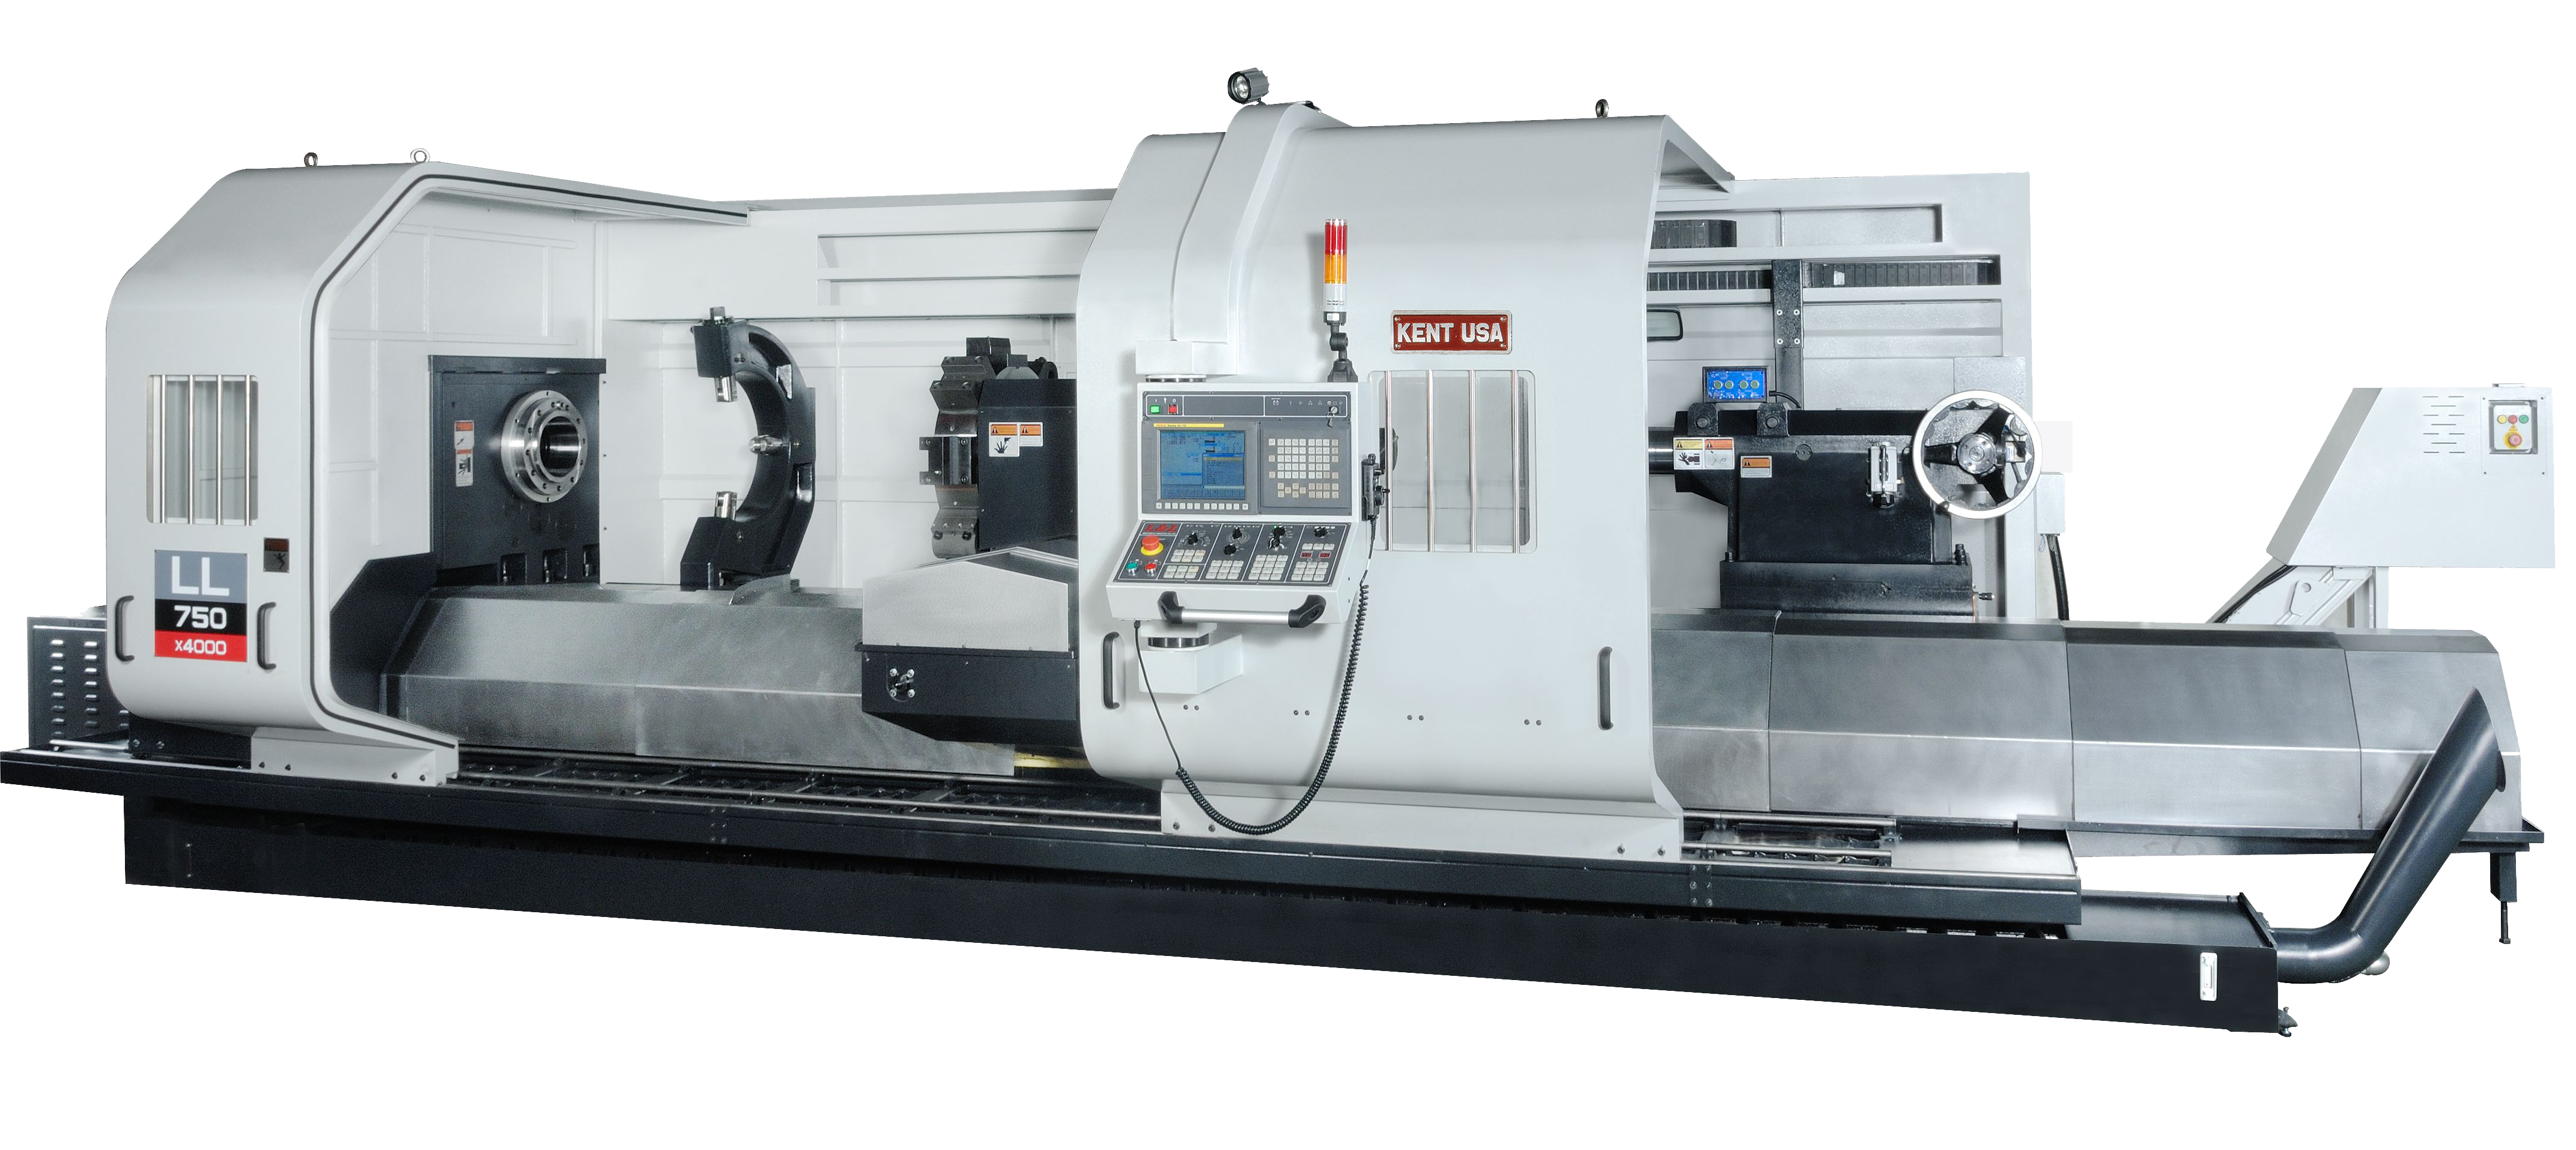 Kent-CNC-LL-750-5-Bed-Way-Heavy-Duty-CNC-Lathe